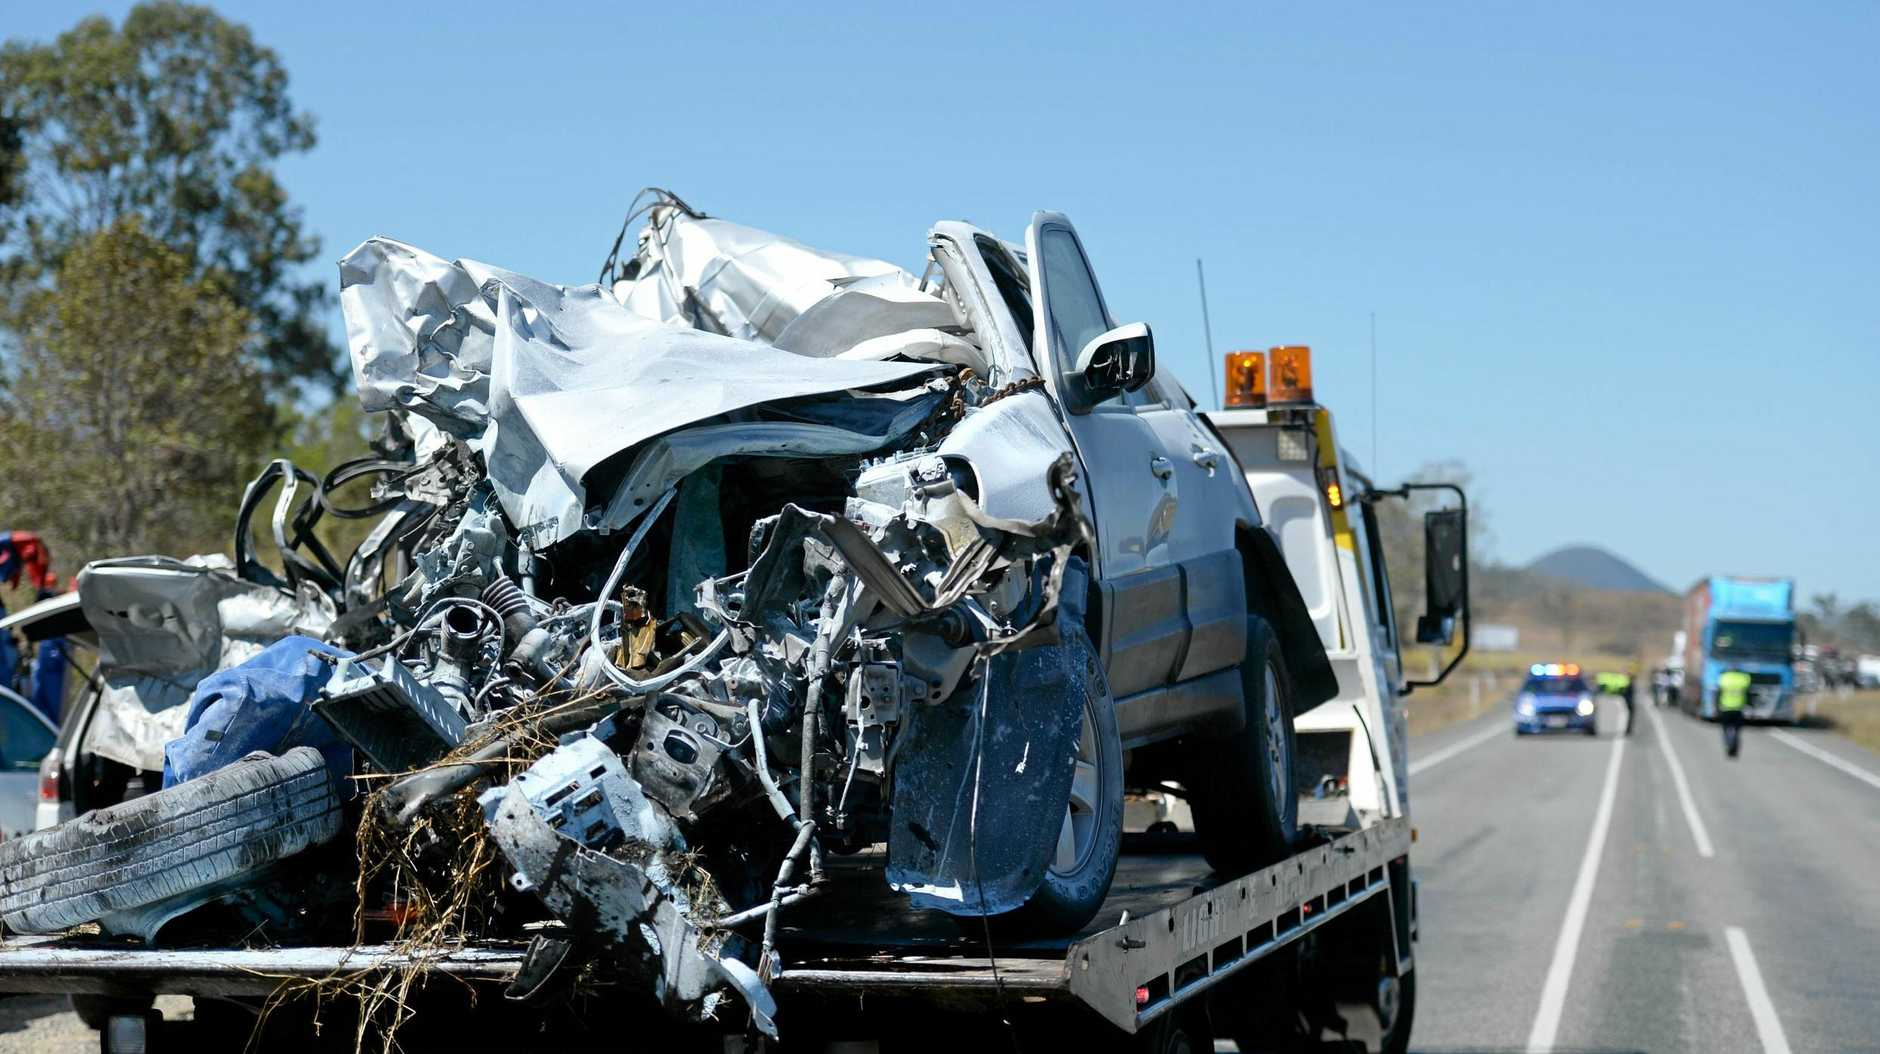 The wreckage of the vehicle is removed from the crash scene on the Bruce Highway near Bloomsbury.